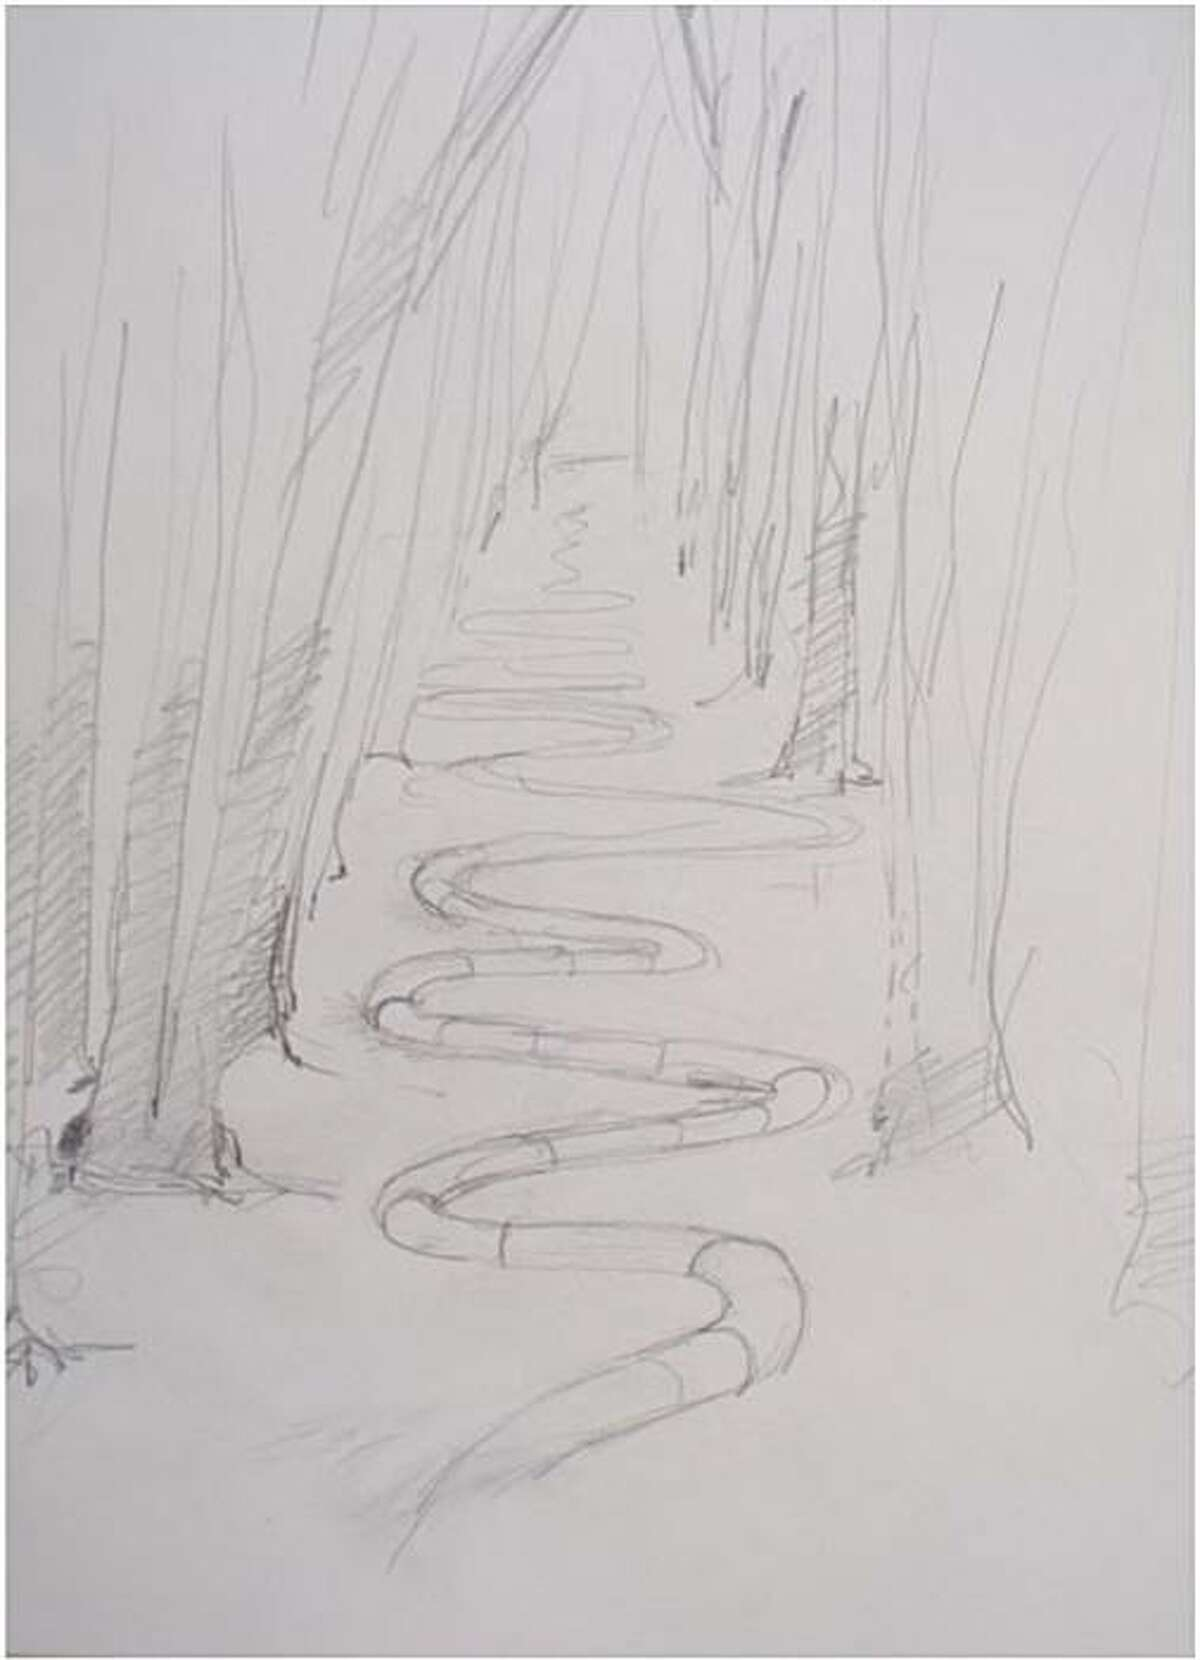 Andy Goldsworthy, a British environmental artist, drew this image for the Presidio Trust to illustrate his conceptual proposal